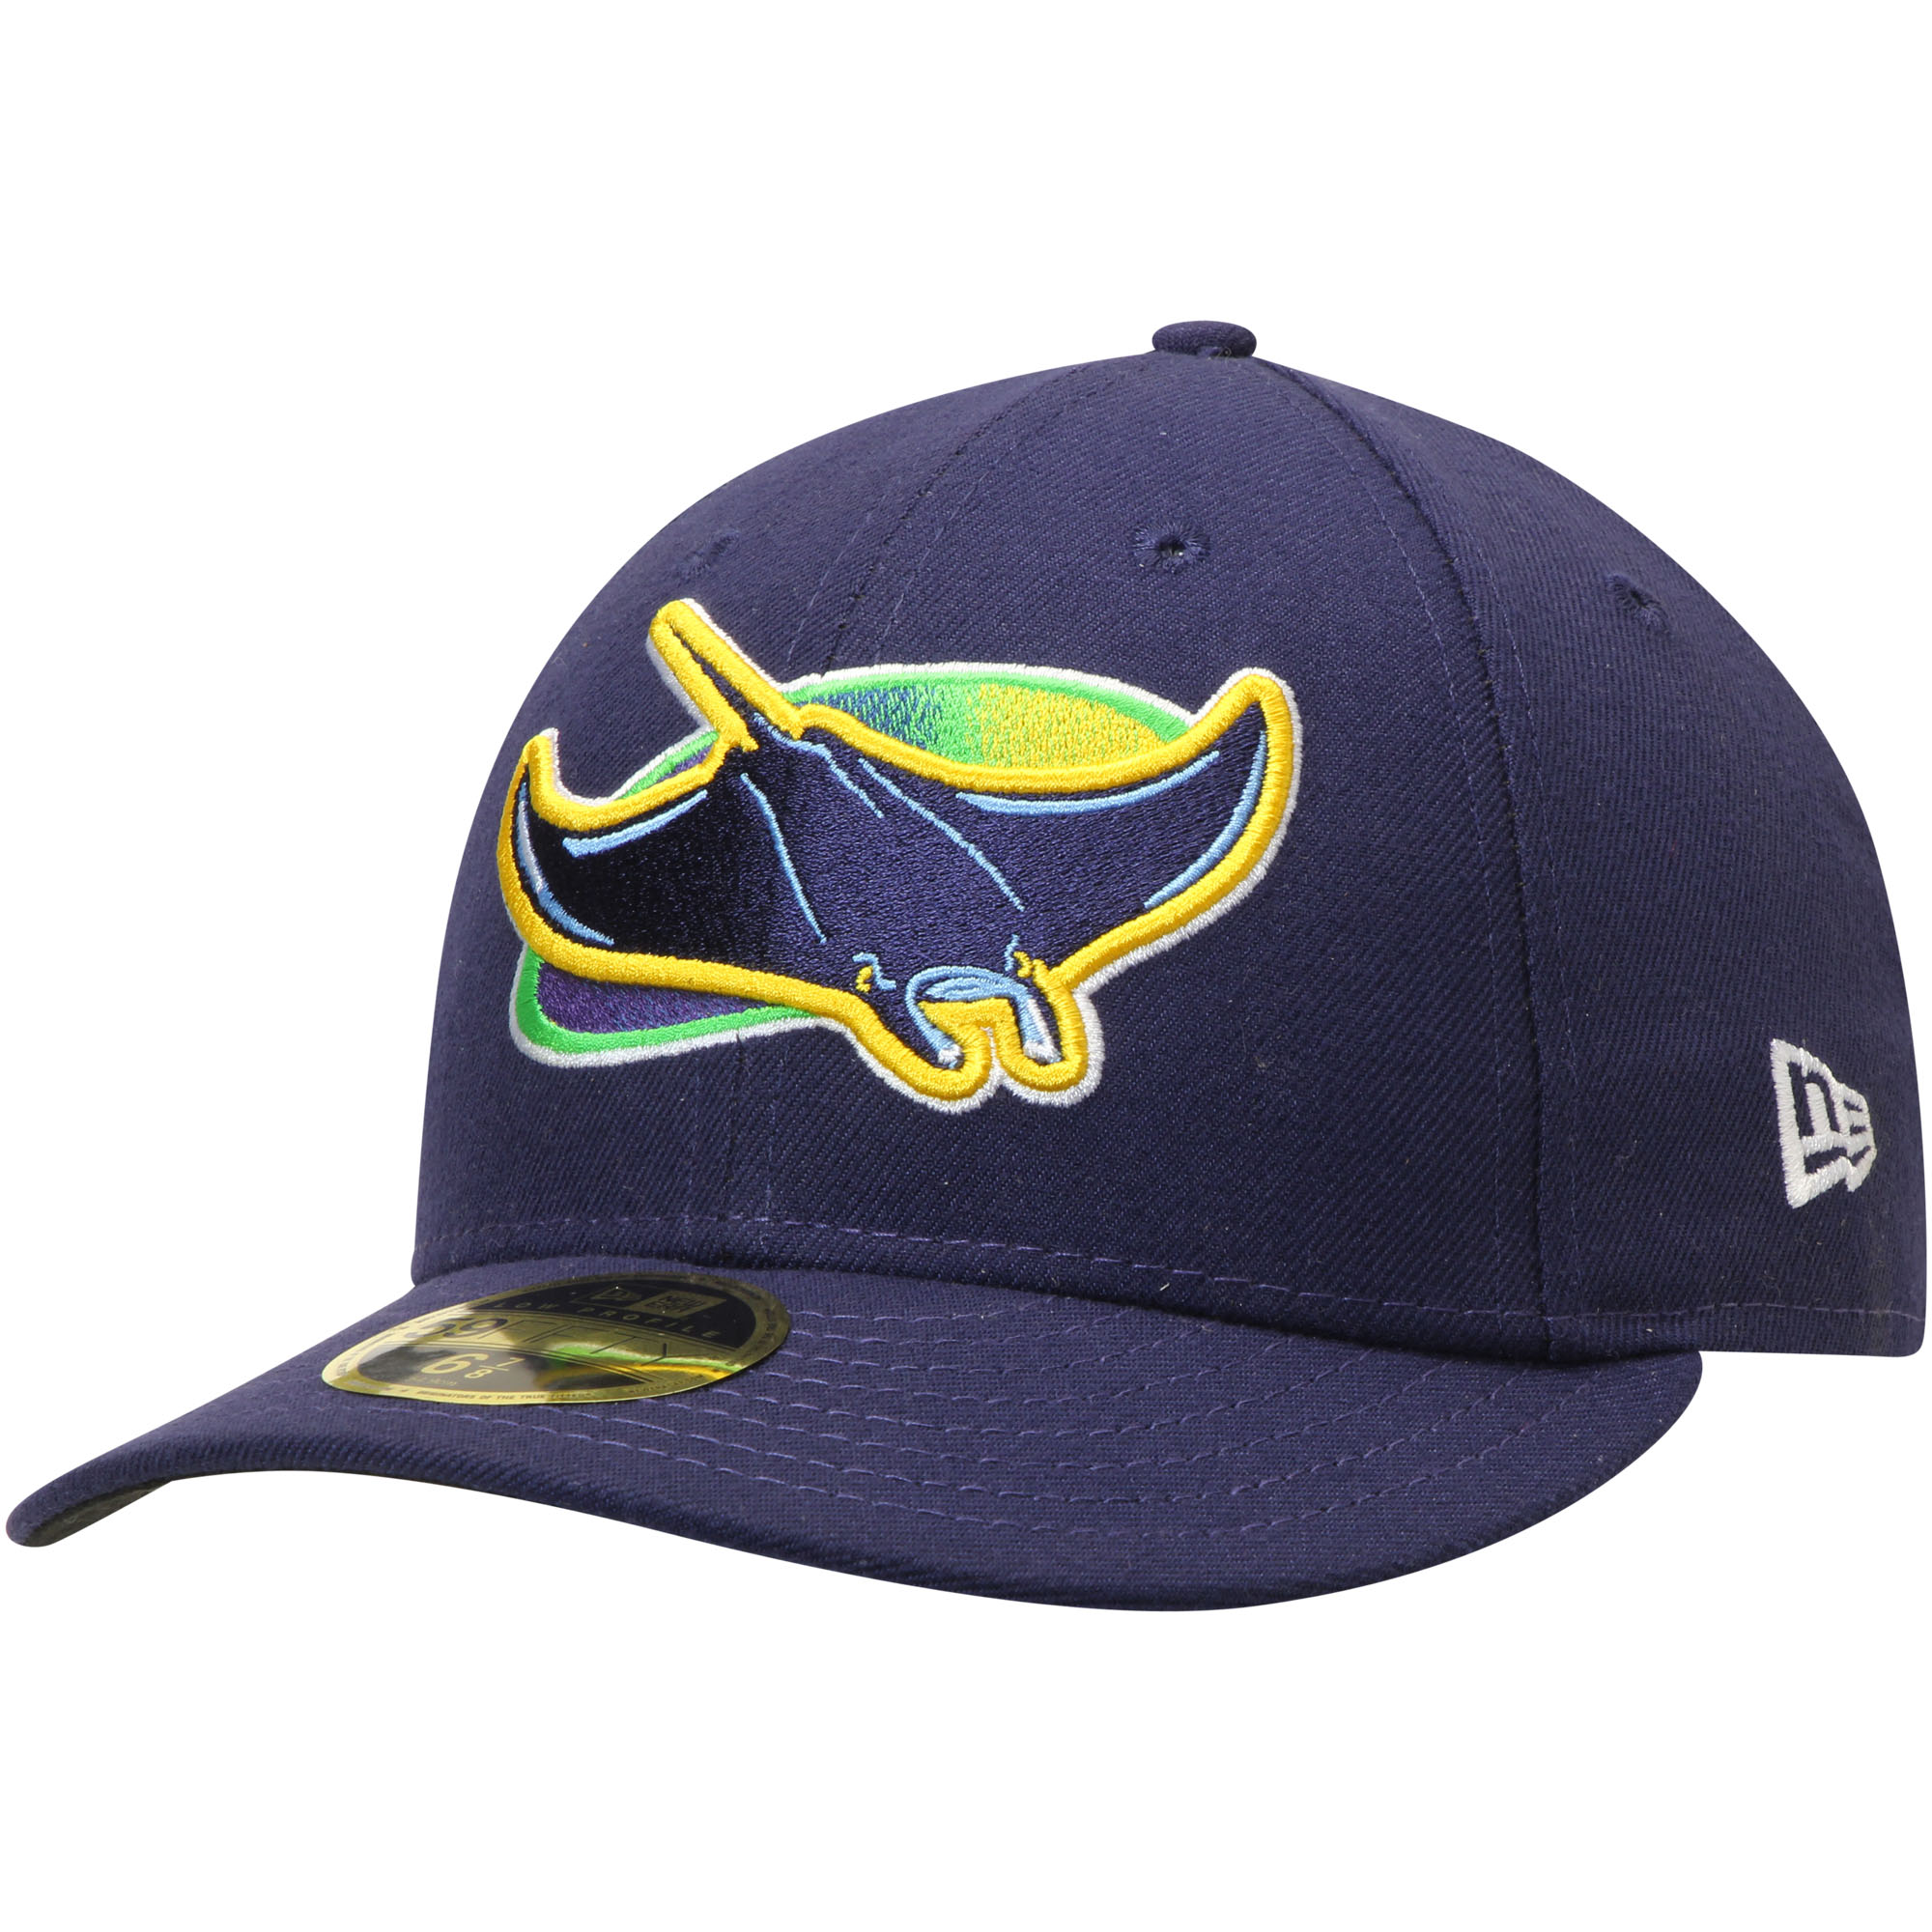 Tampa Bay Rays New Era Alternate Authentic Collection On-Field Low Profile 59FIFTY Fitted Hat - Navy